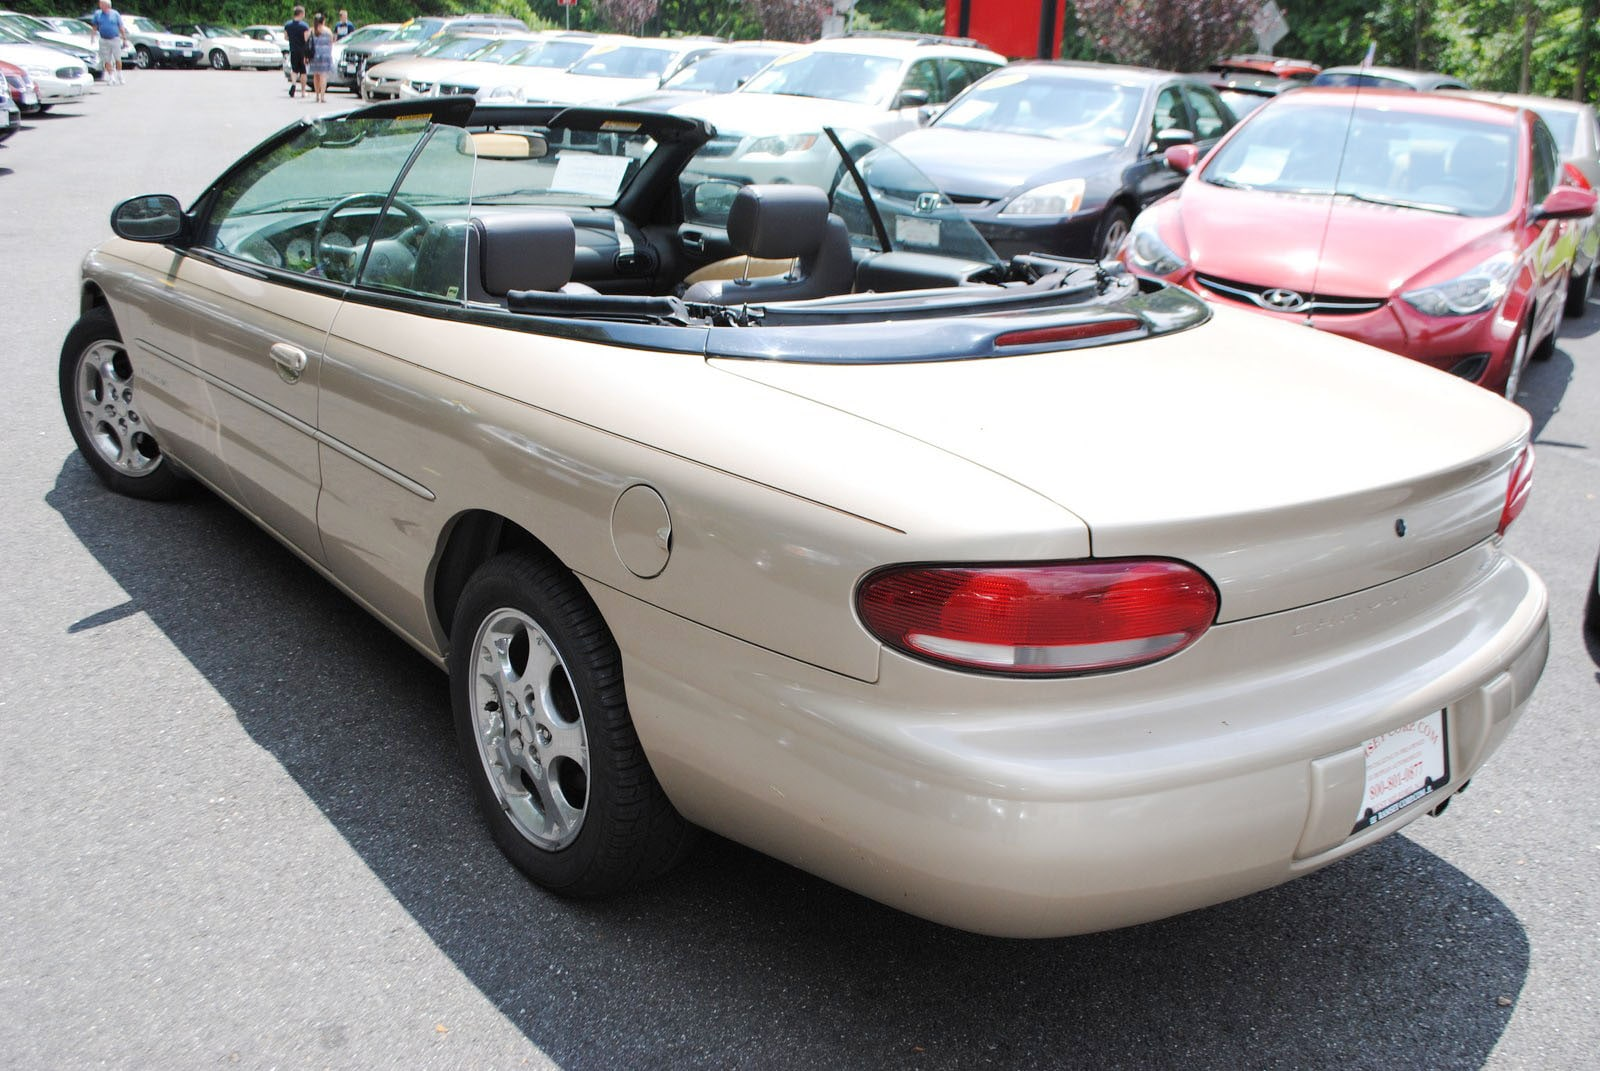 used 1999 chrysler sebring for sale west milford nj. Black Bedroom Furniture Sets. Home Design Ideas